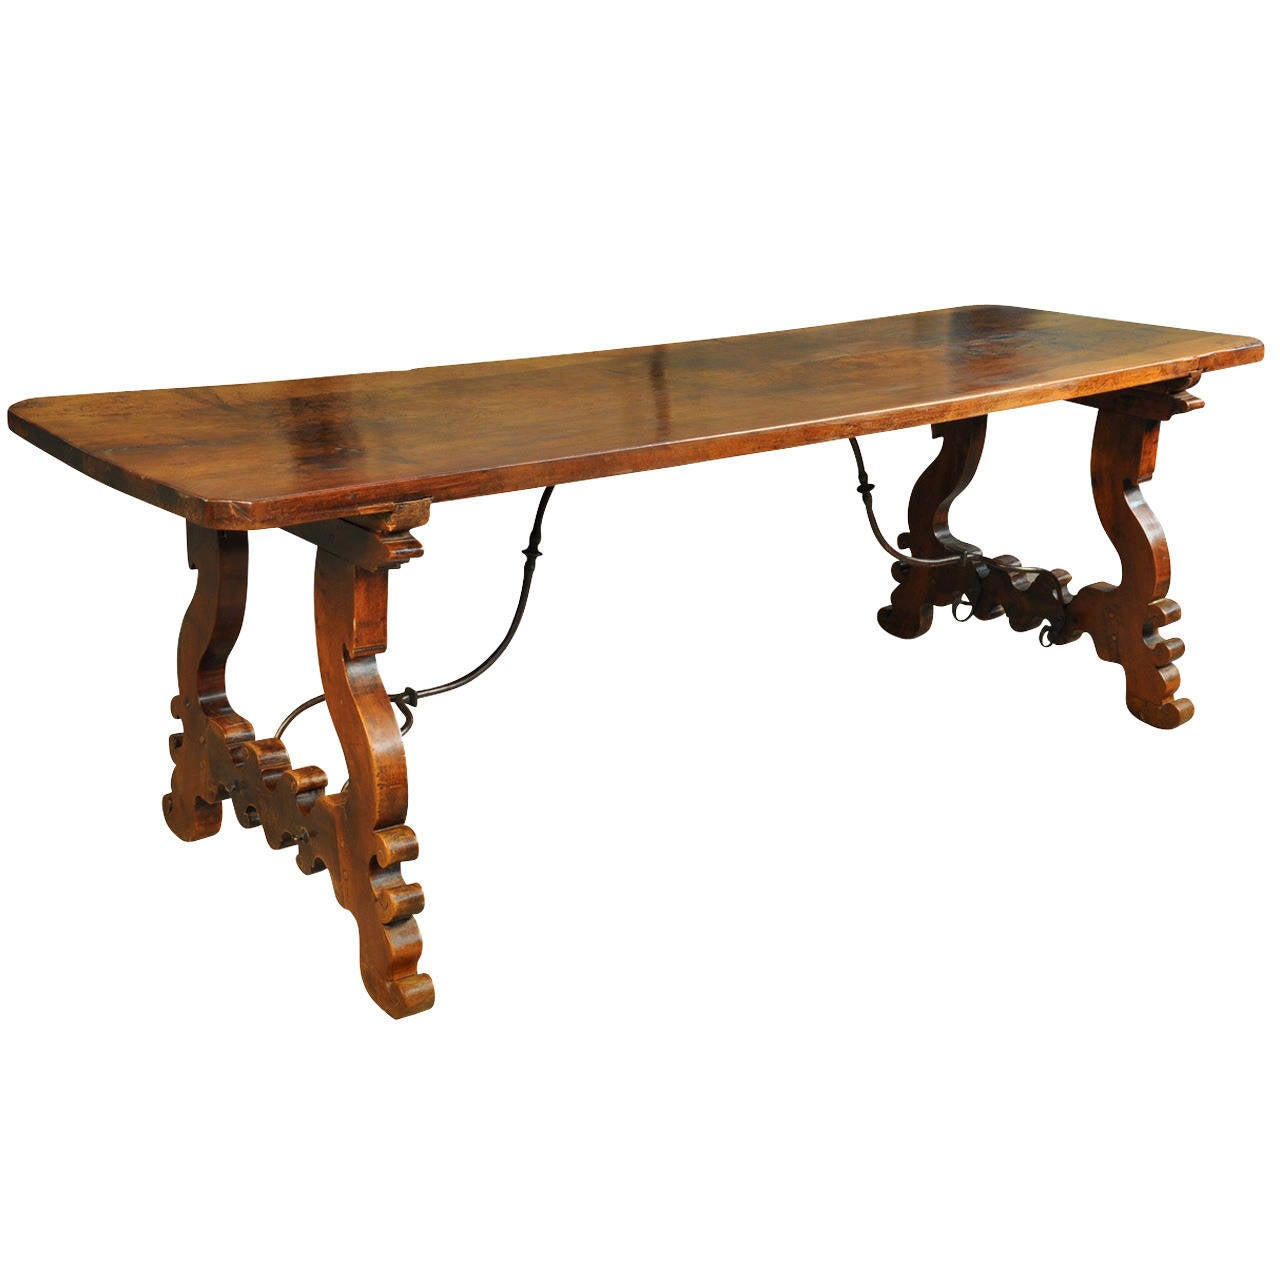 18th century spanish farm or trestle table in walnut with for Table in spanish